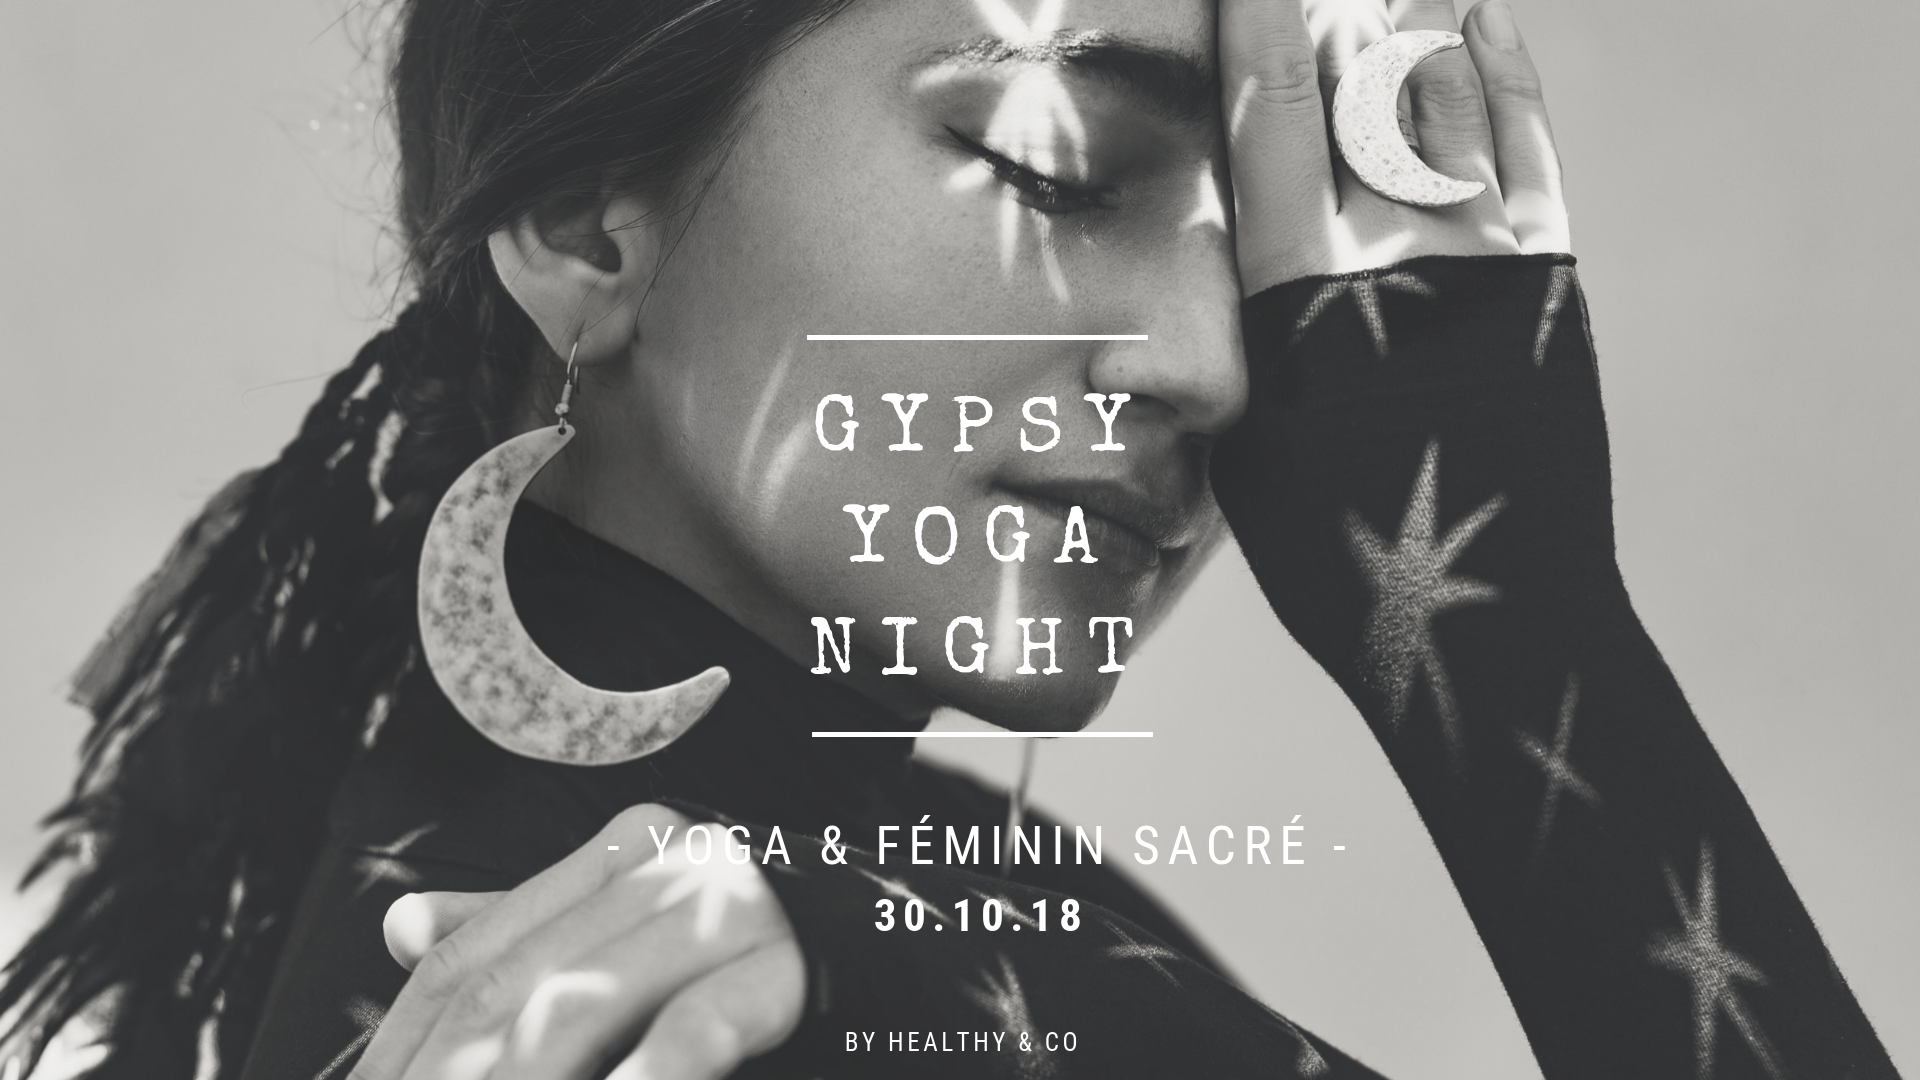 gypsy yoga night - yoga & féminin sacré